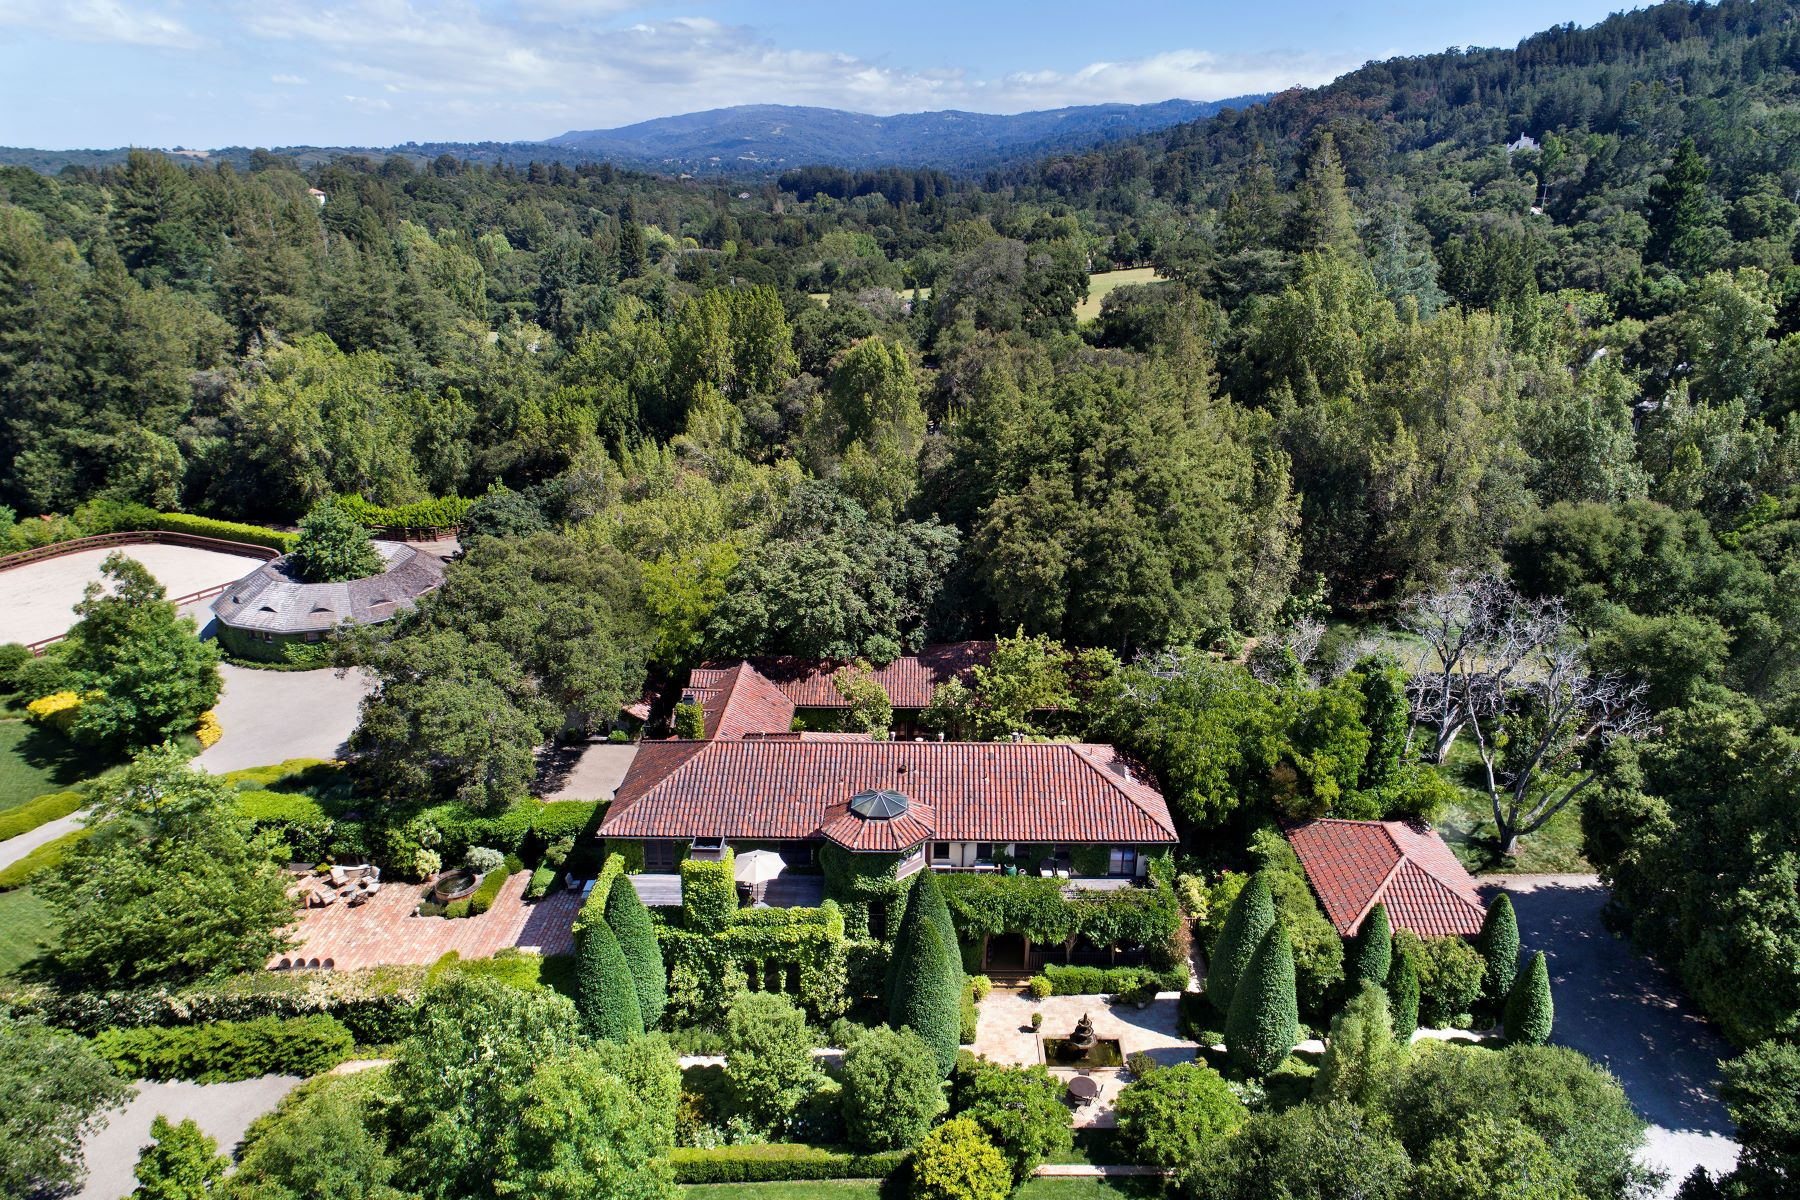 Property for Sale at Idyllic Woodside Estate Woodside, California 94062 United States